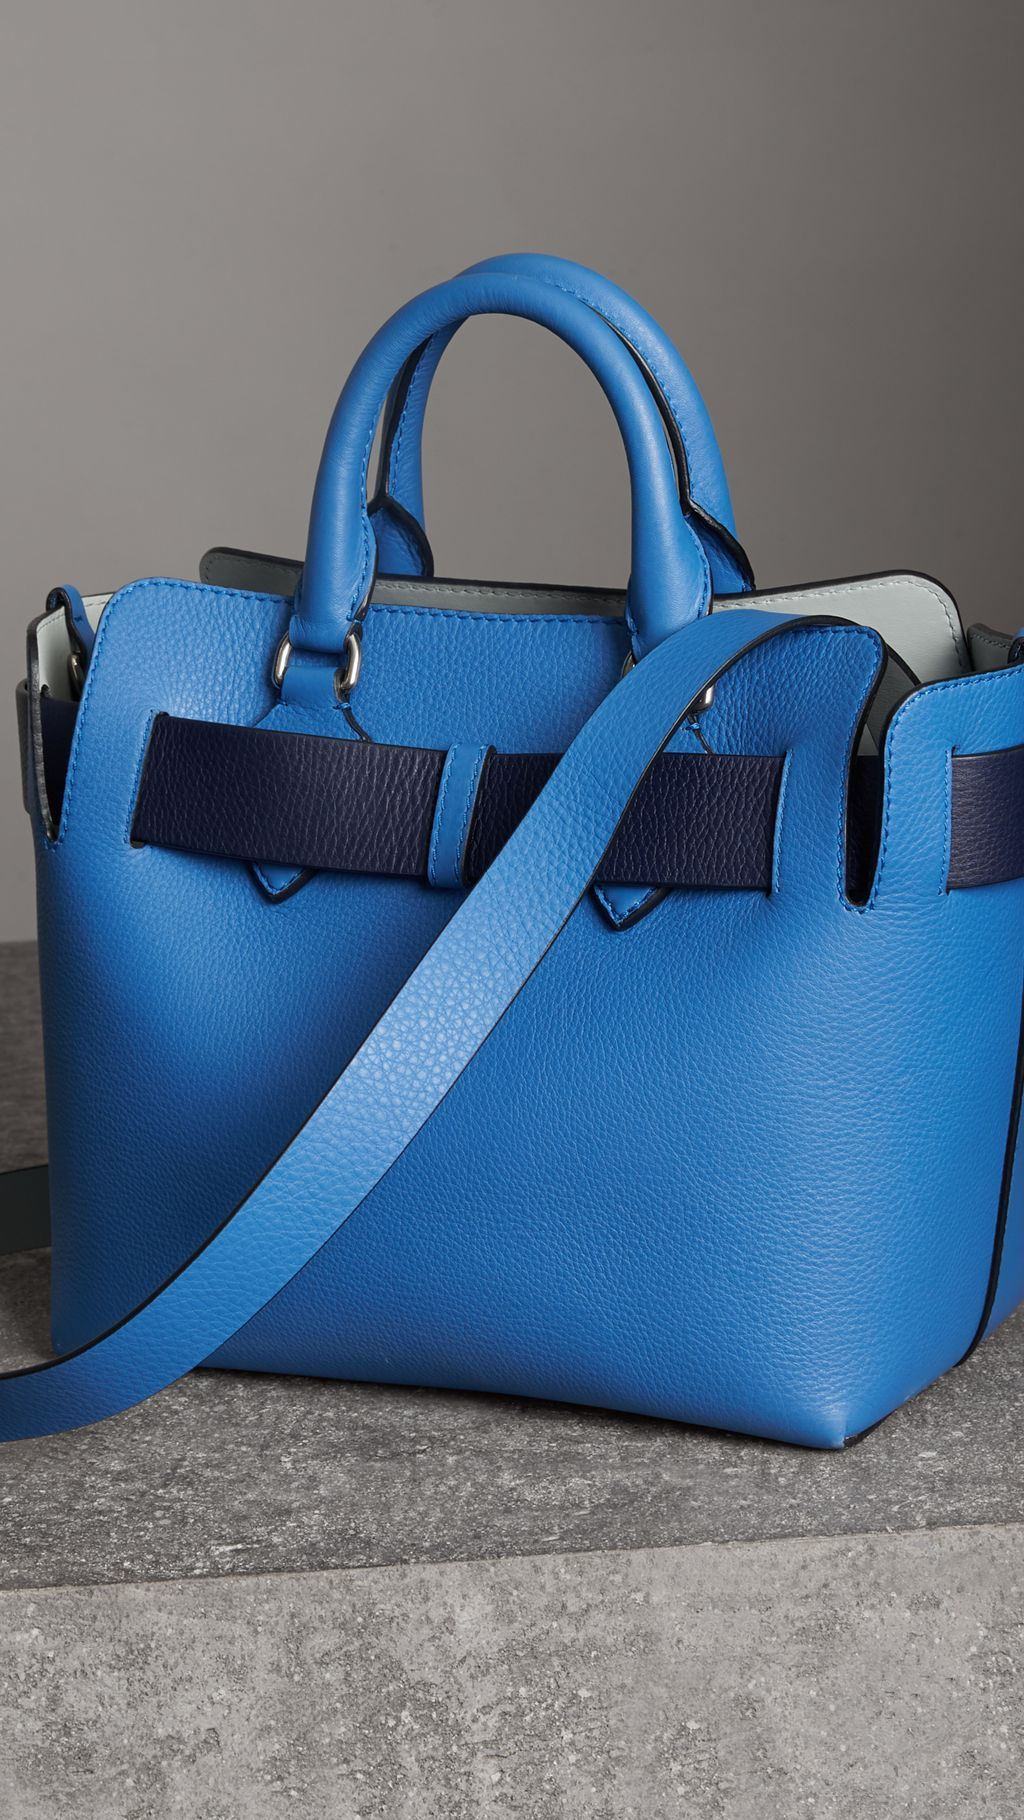 aaf9a15caa4 The Small Leather Belt Bag in Hydrangea Blue - Women   Burberry ...